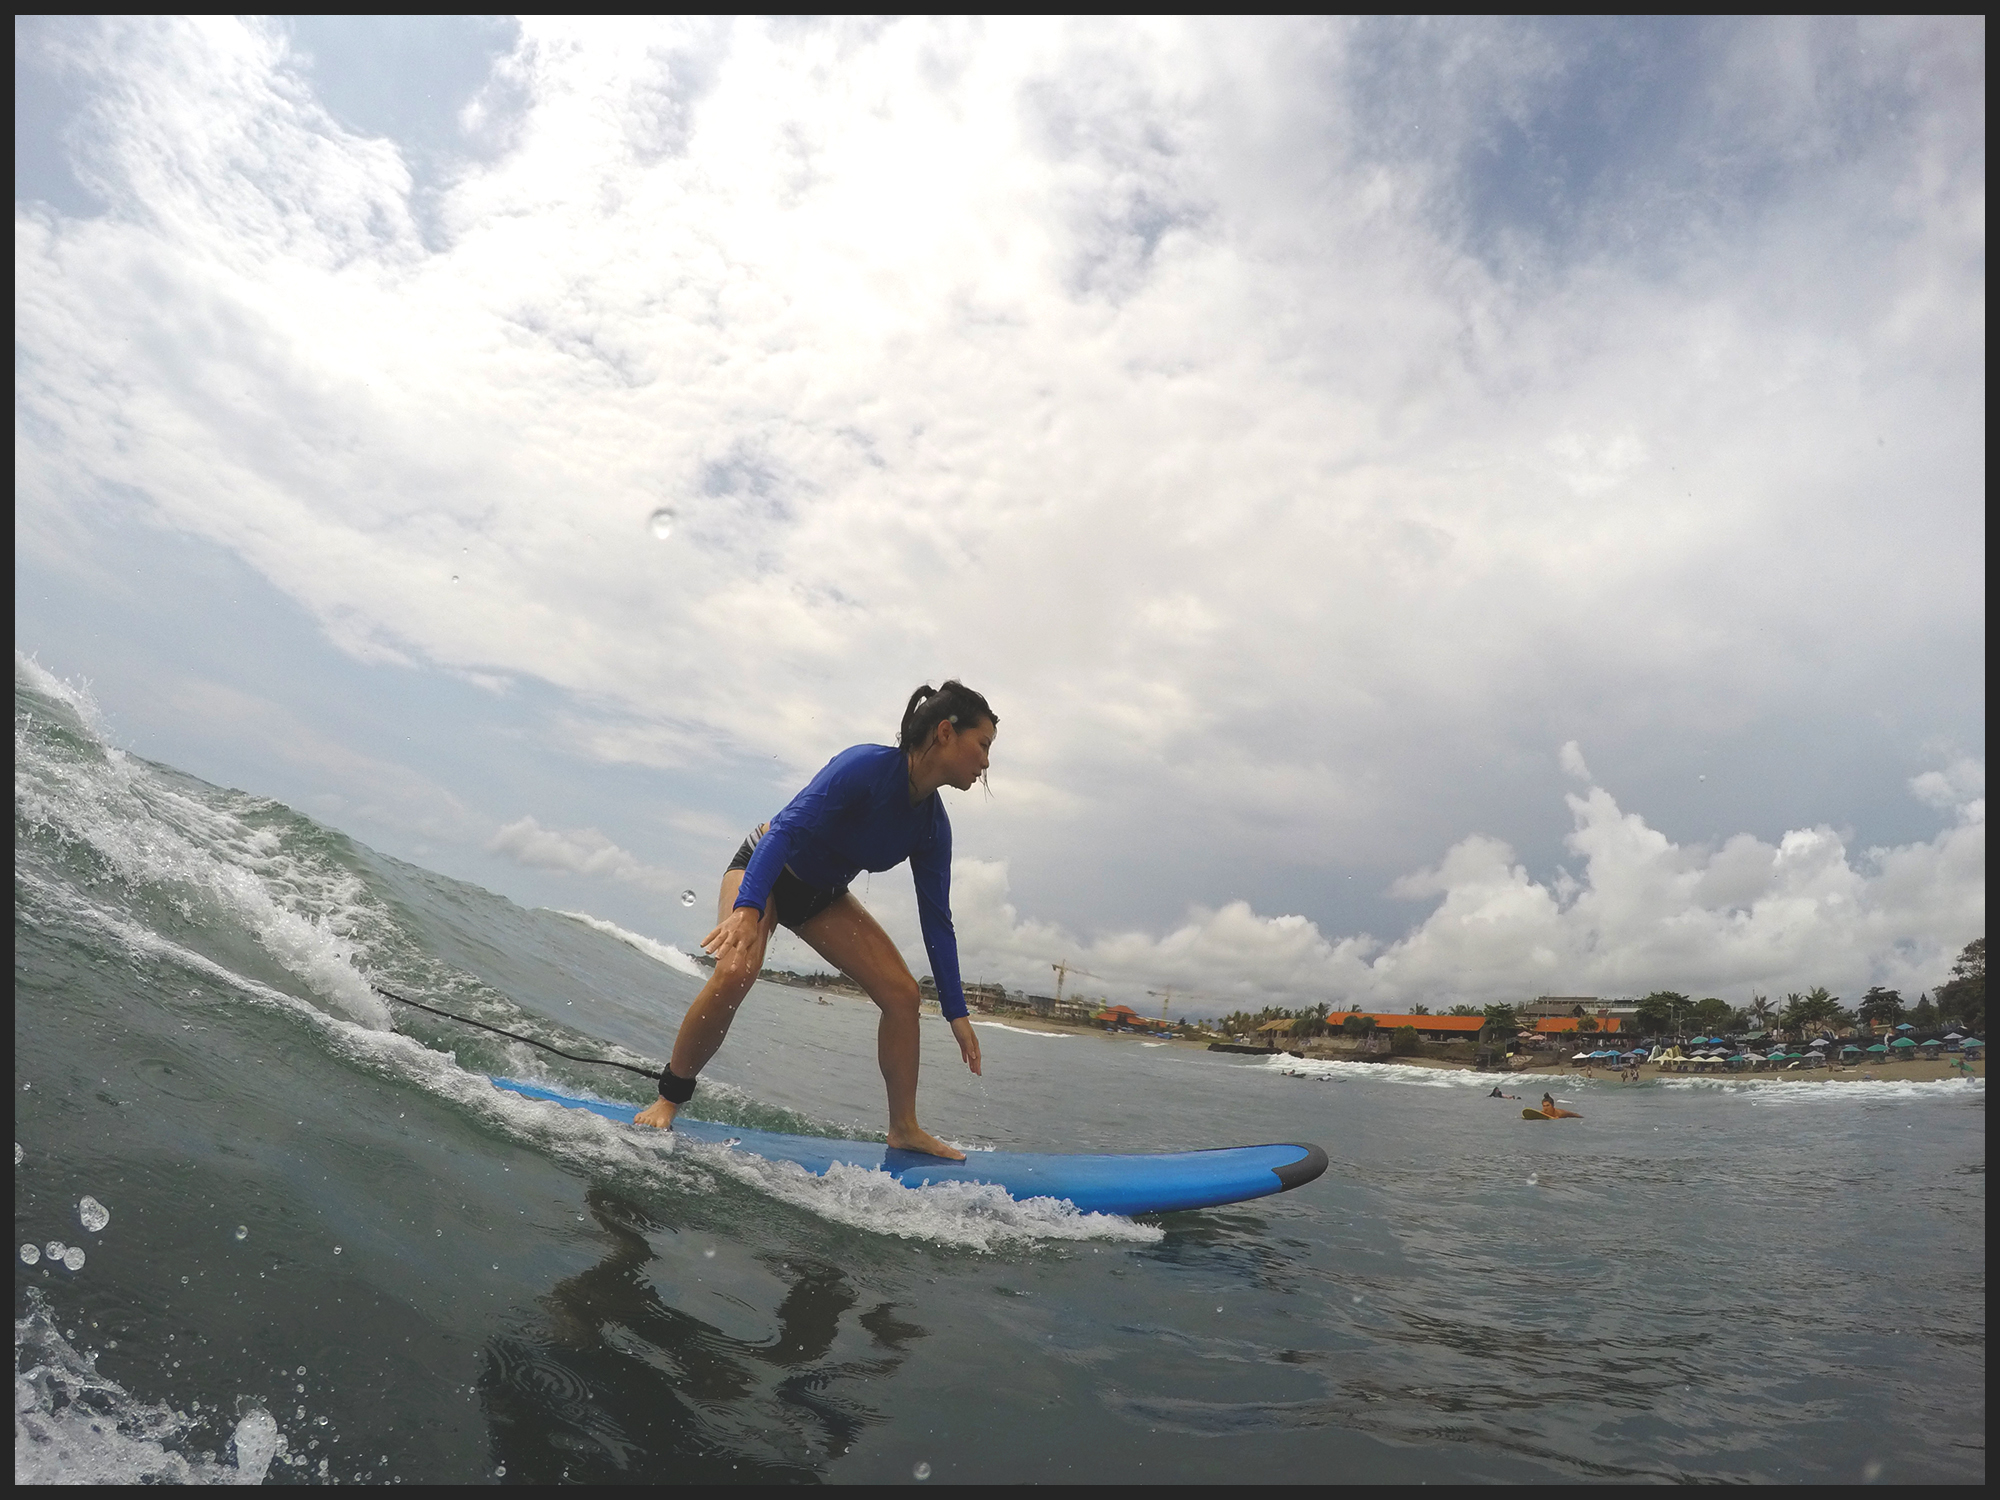 Let the Local Surf Guide Teach you how to surf